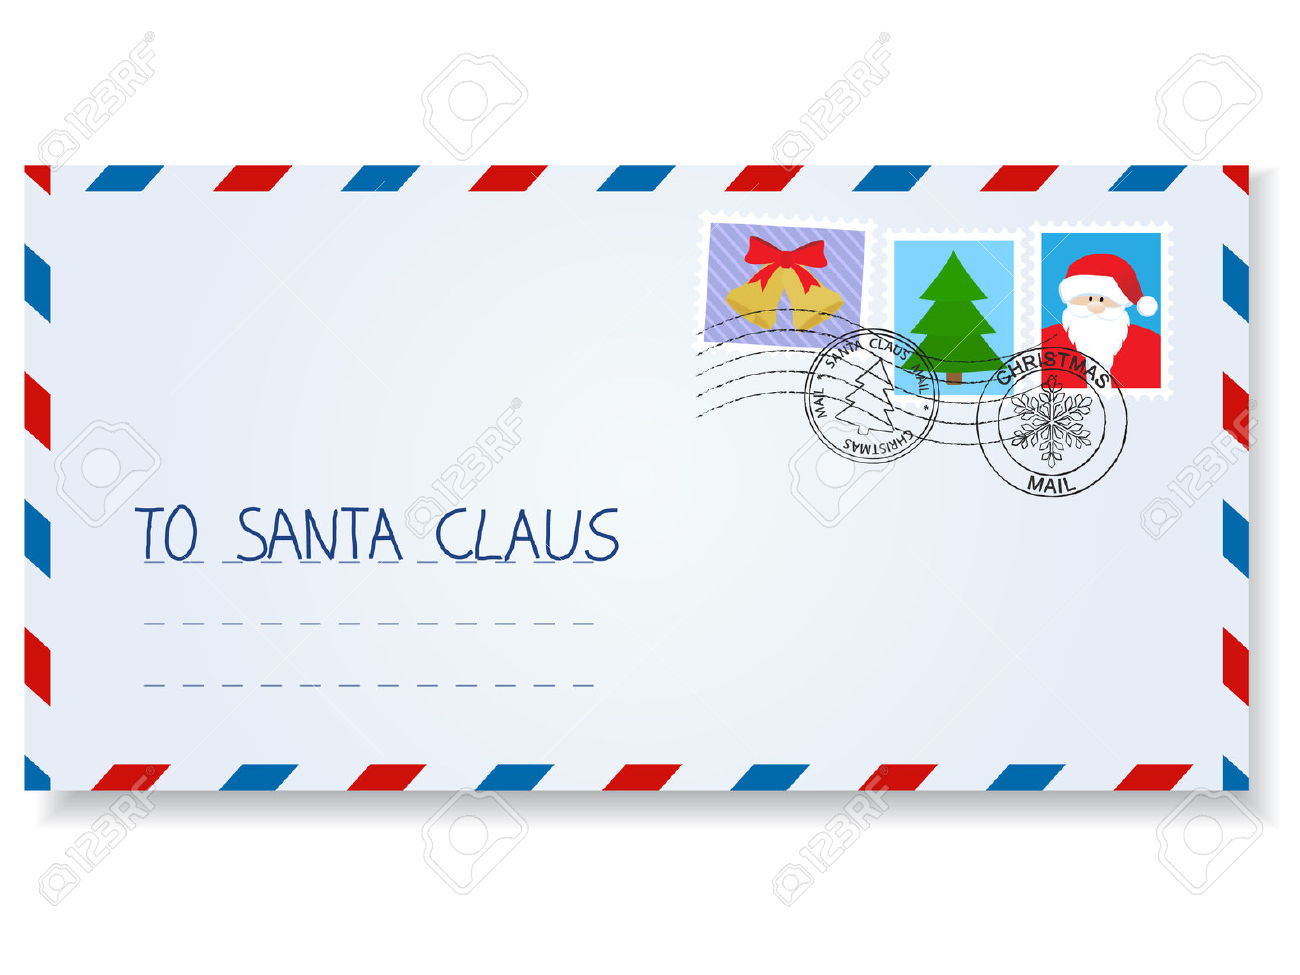 Letter To Santa Claus With Stamps And Postage Marks Royalty Free.